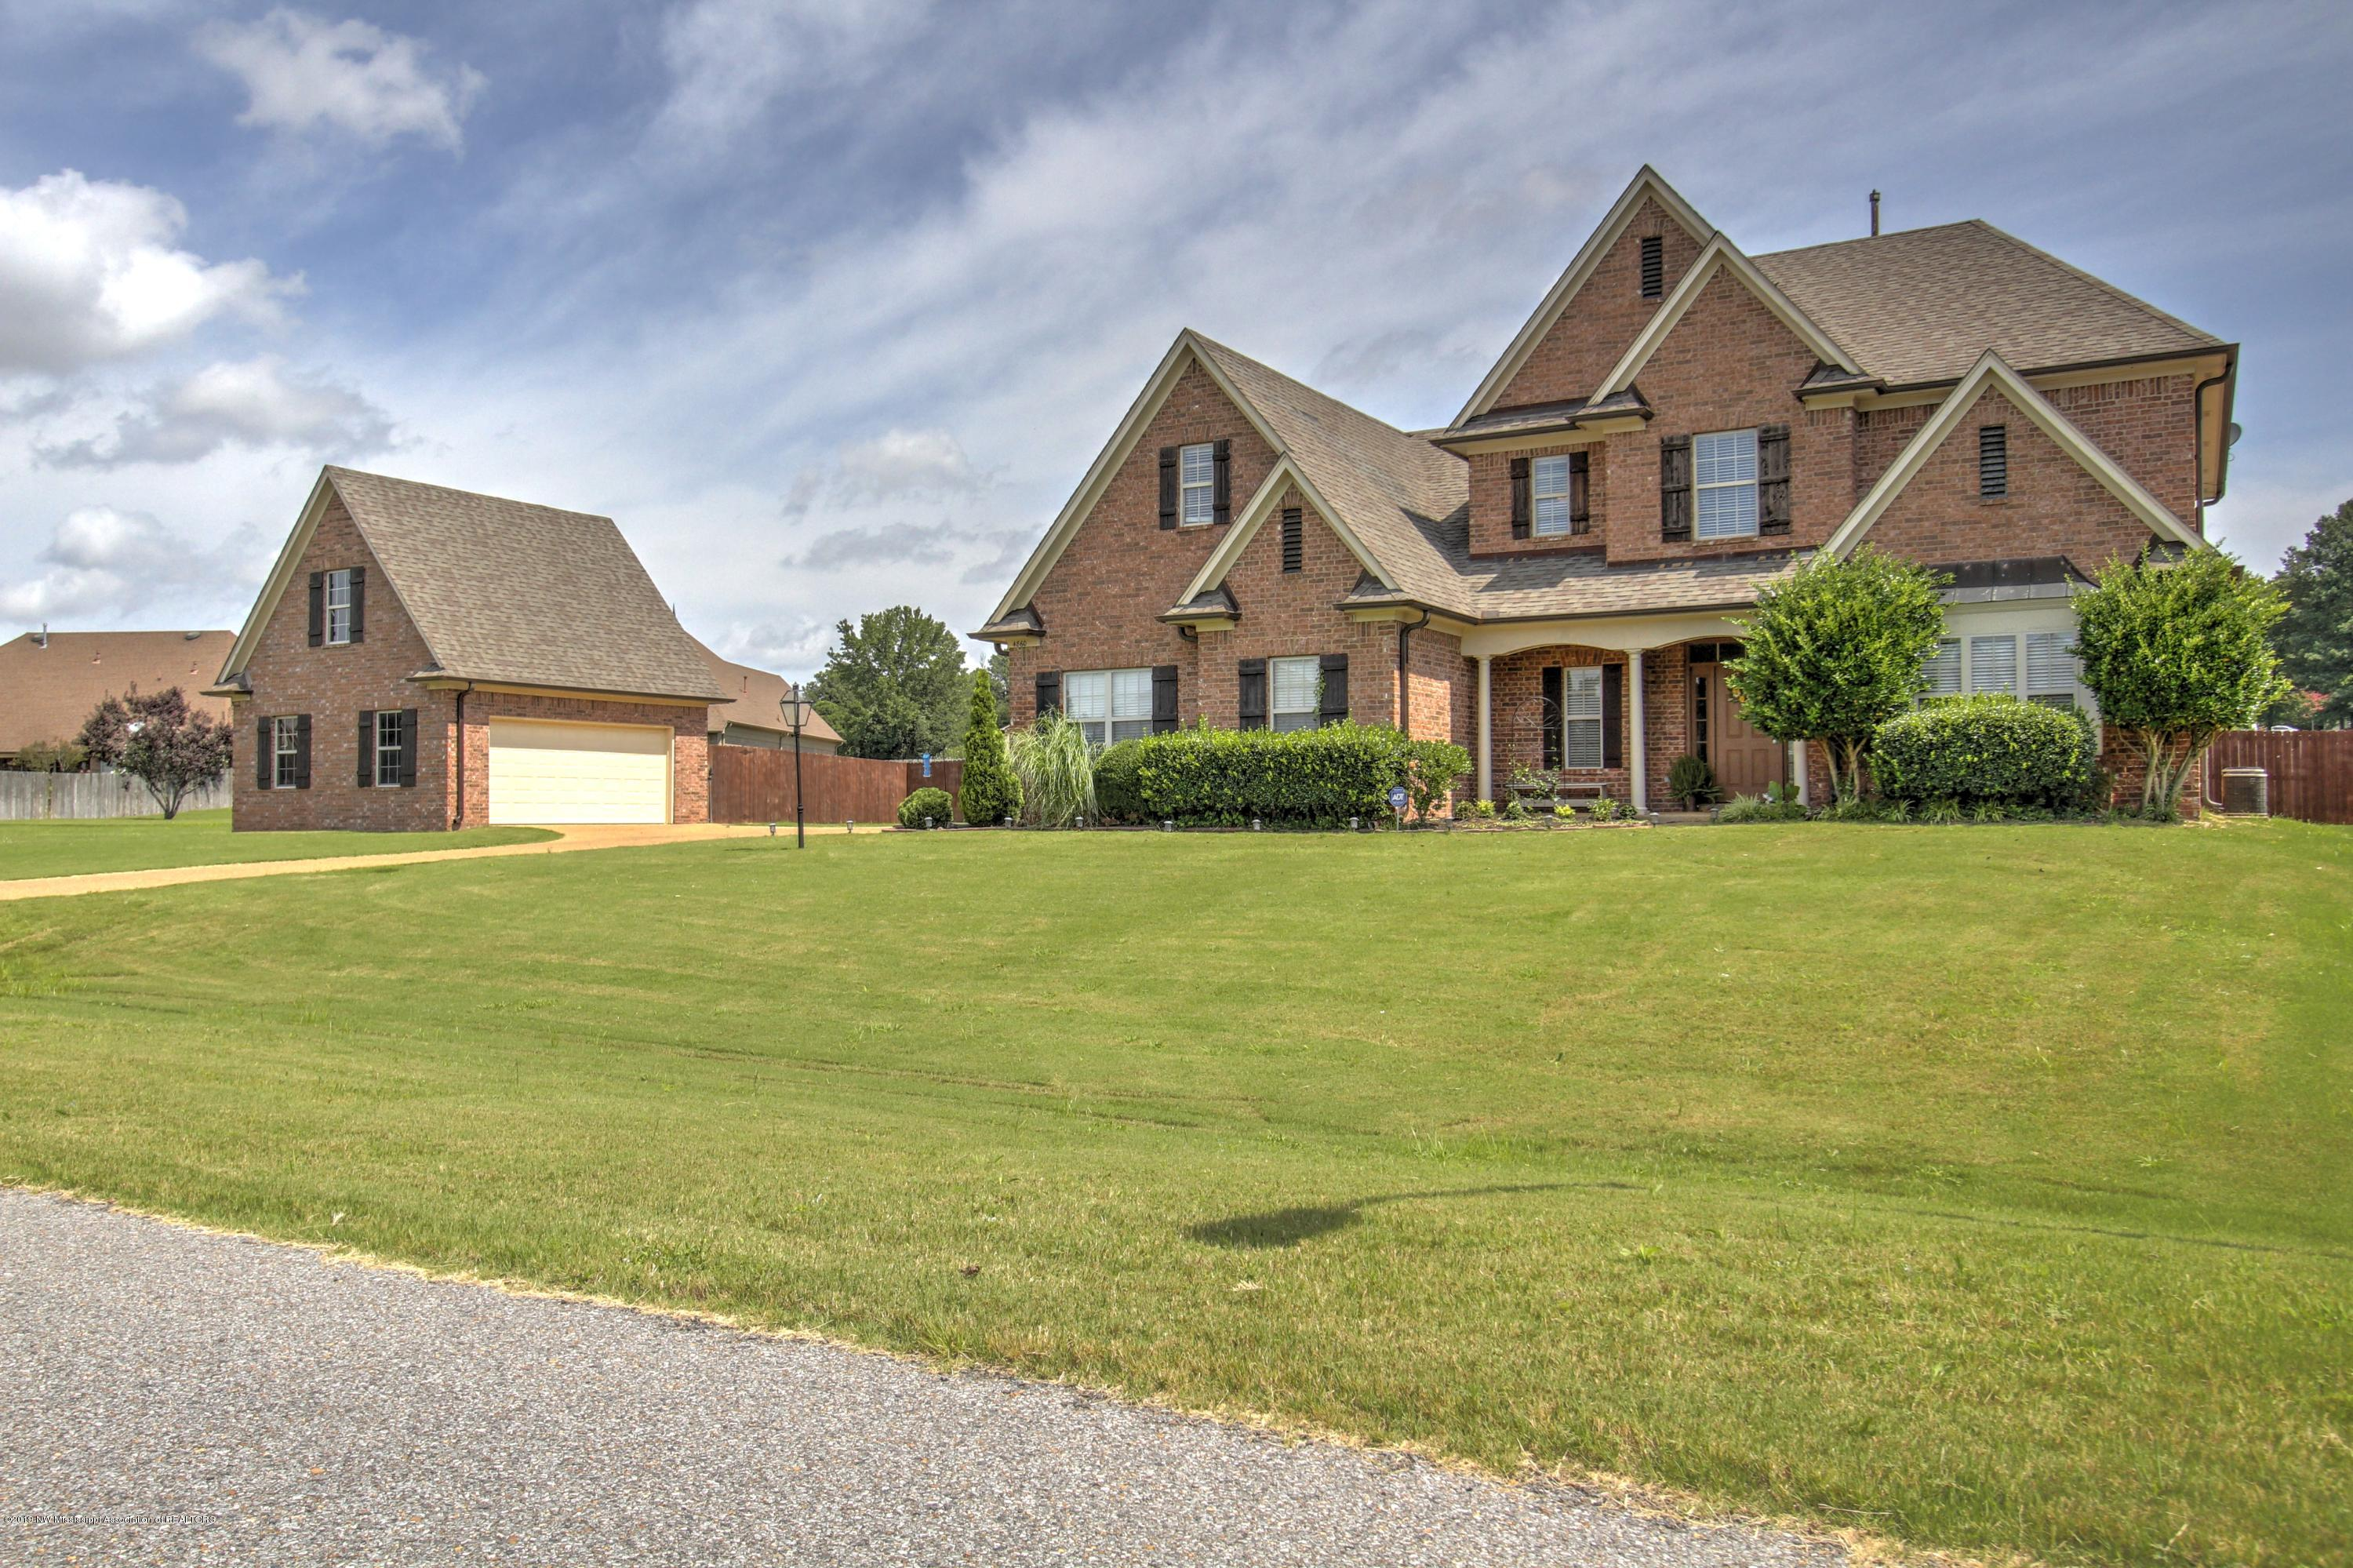 4860 Wedgewood Drive, Olive Branch in DeSoto County, MS 38654 Home for Sale